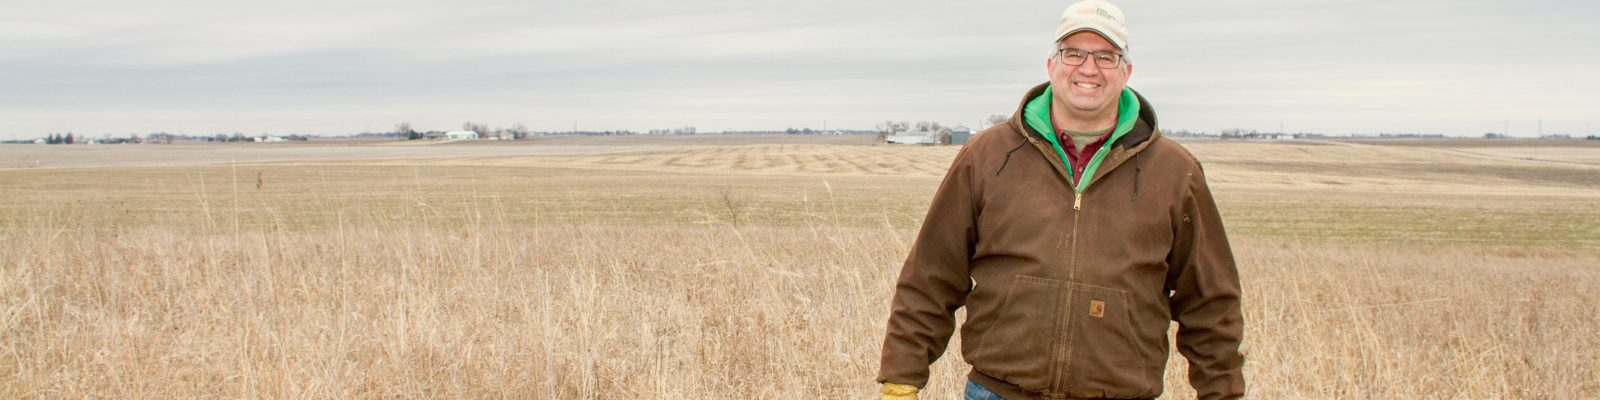 Restoring Family Farm Diversity with Organic Crops, Prairie, and Wetlands